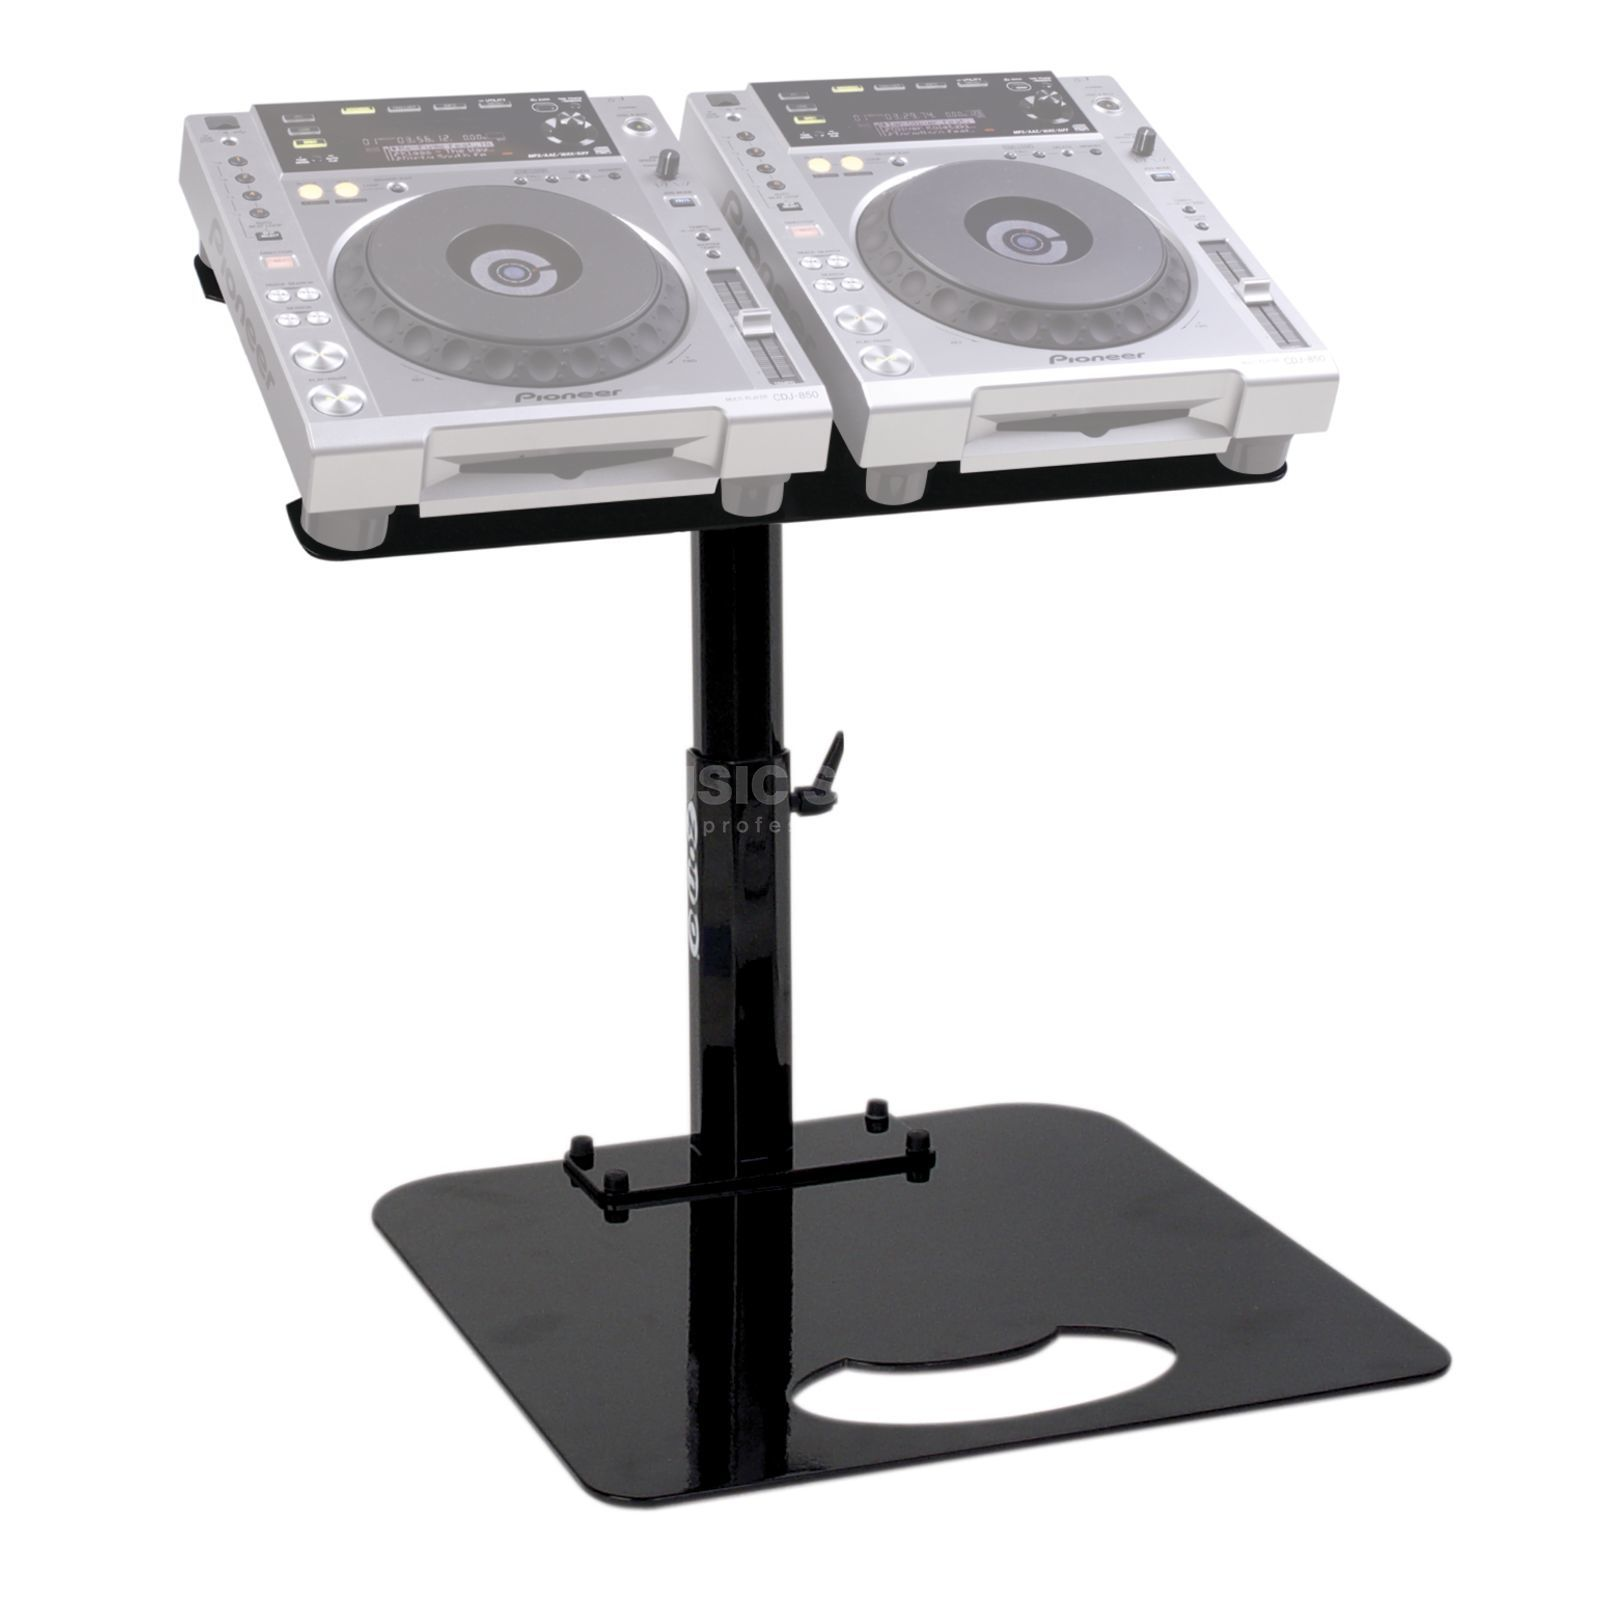 Zomo Pro Stand P-850/2 Black for 2x Pioneer CDJ-851 Product Image